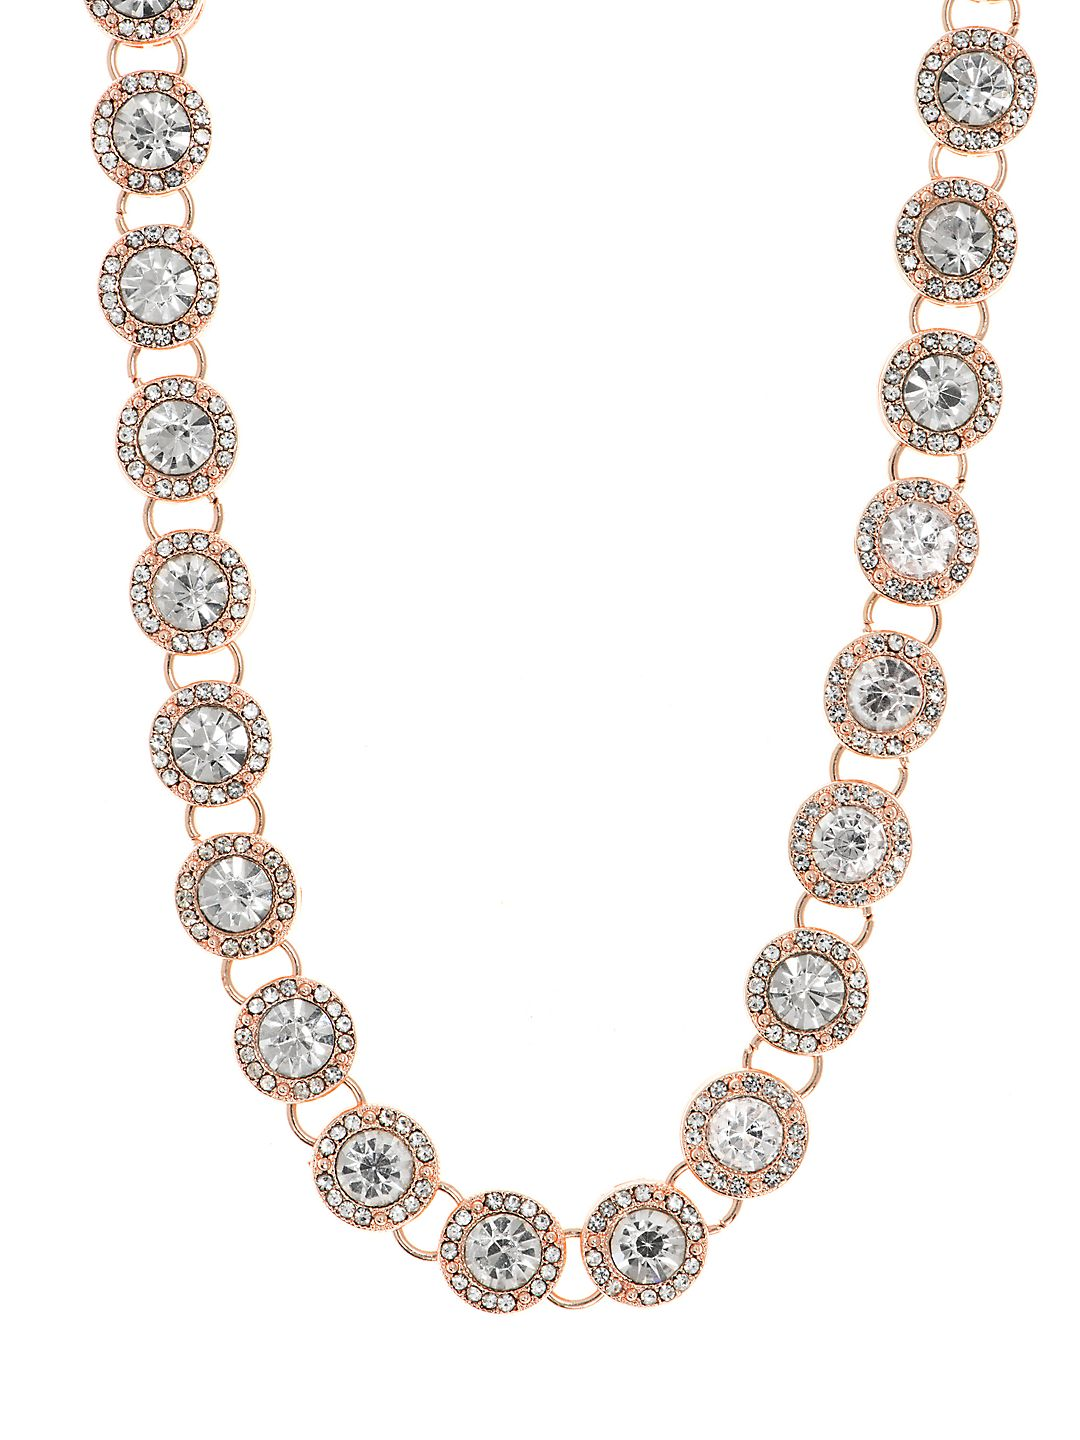 Crystal Collared Necklace